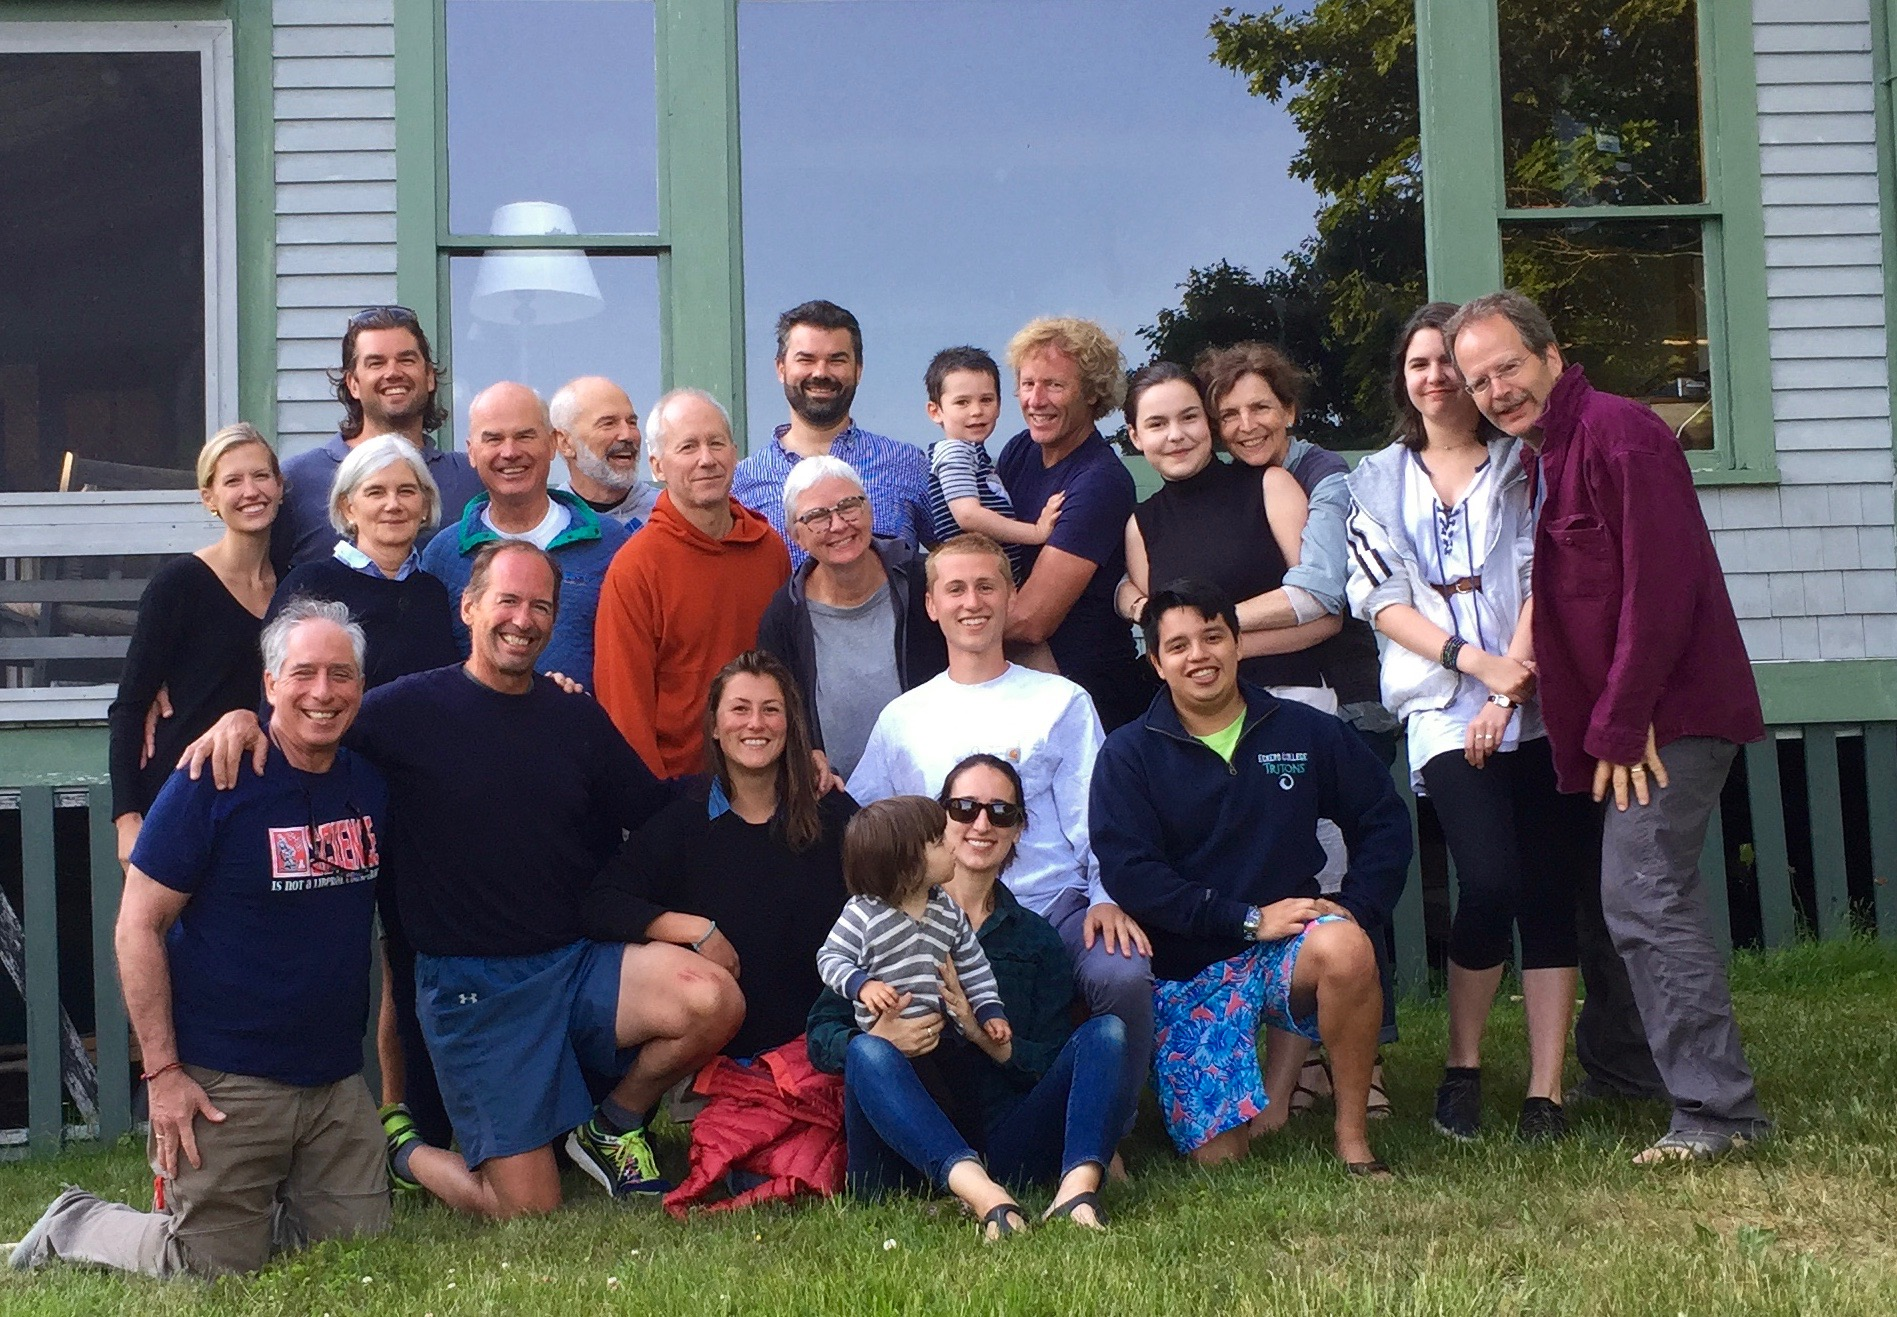 Cadwell Family Reunion in Maine, 2016